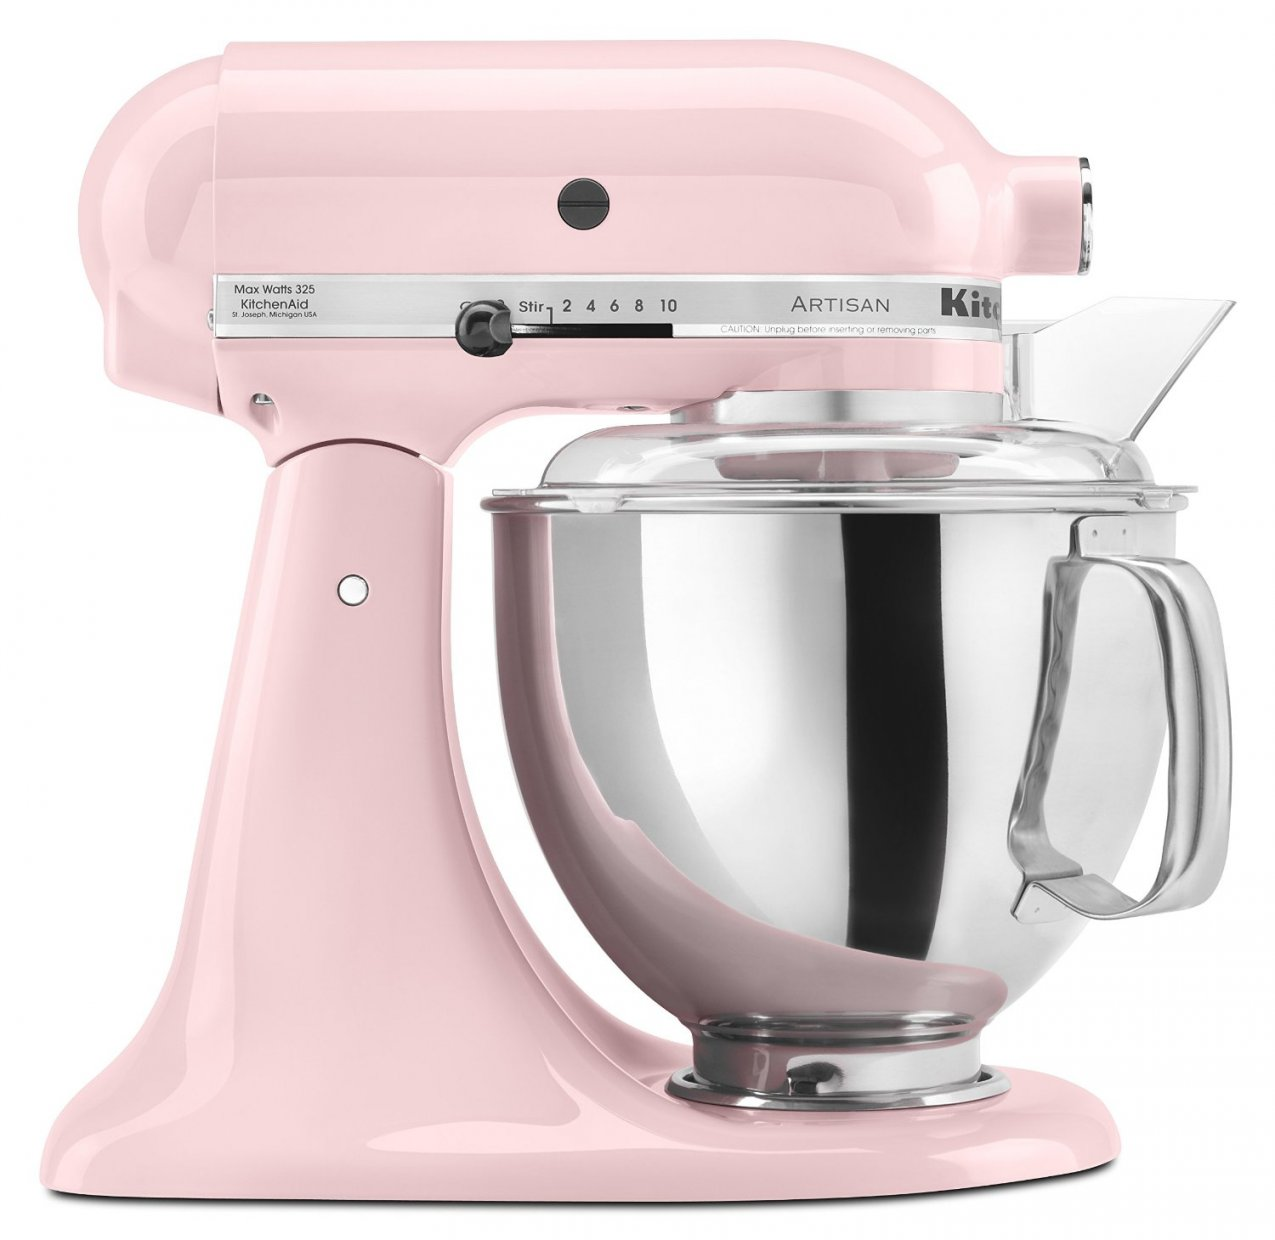 Cool Kitchen Stuff: Pink Kitchen Accessories